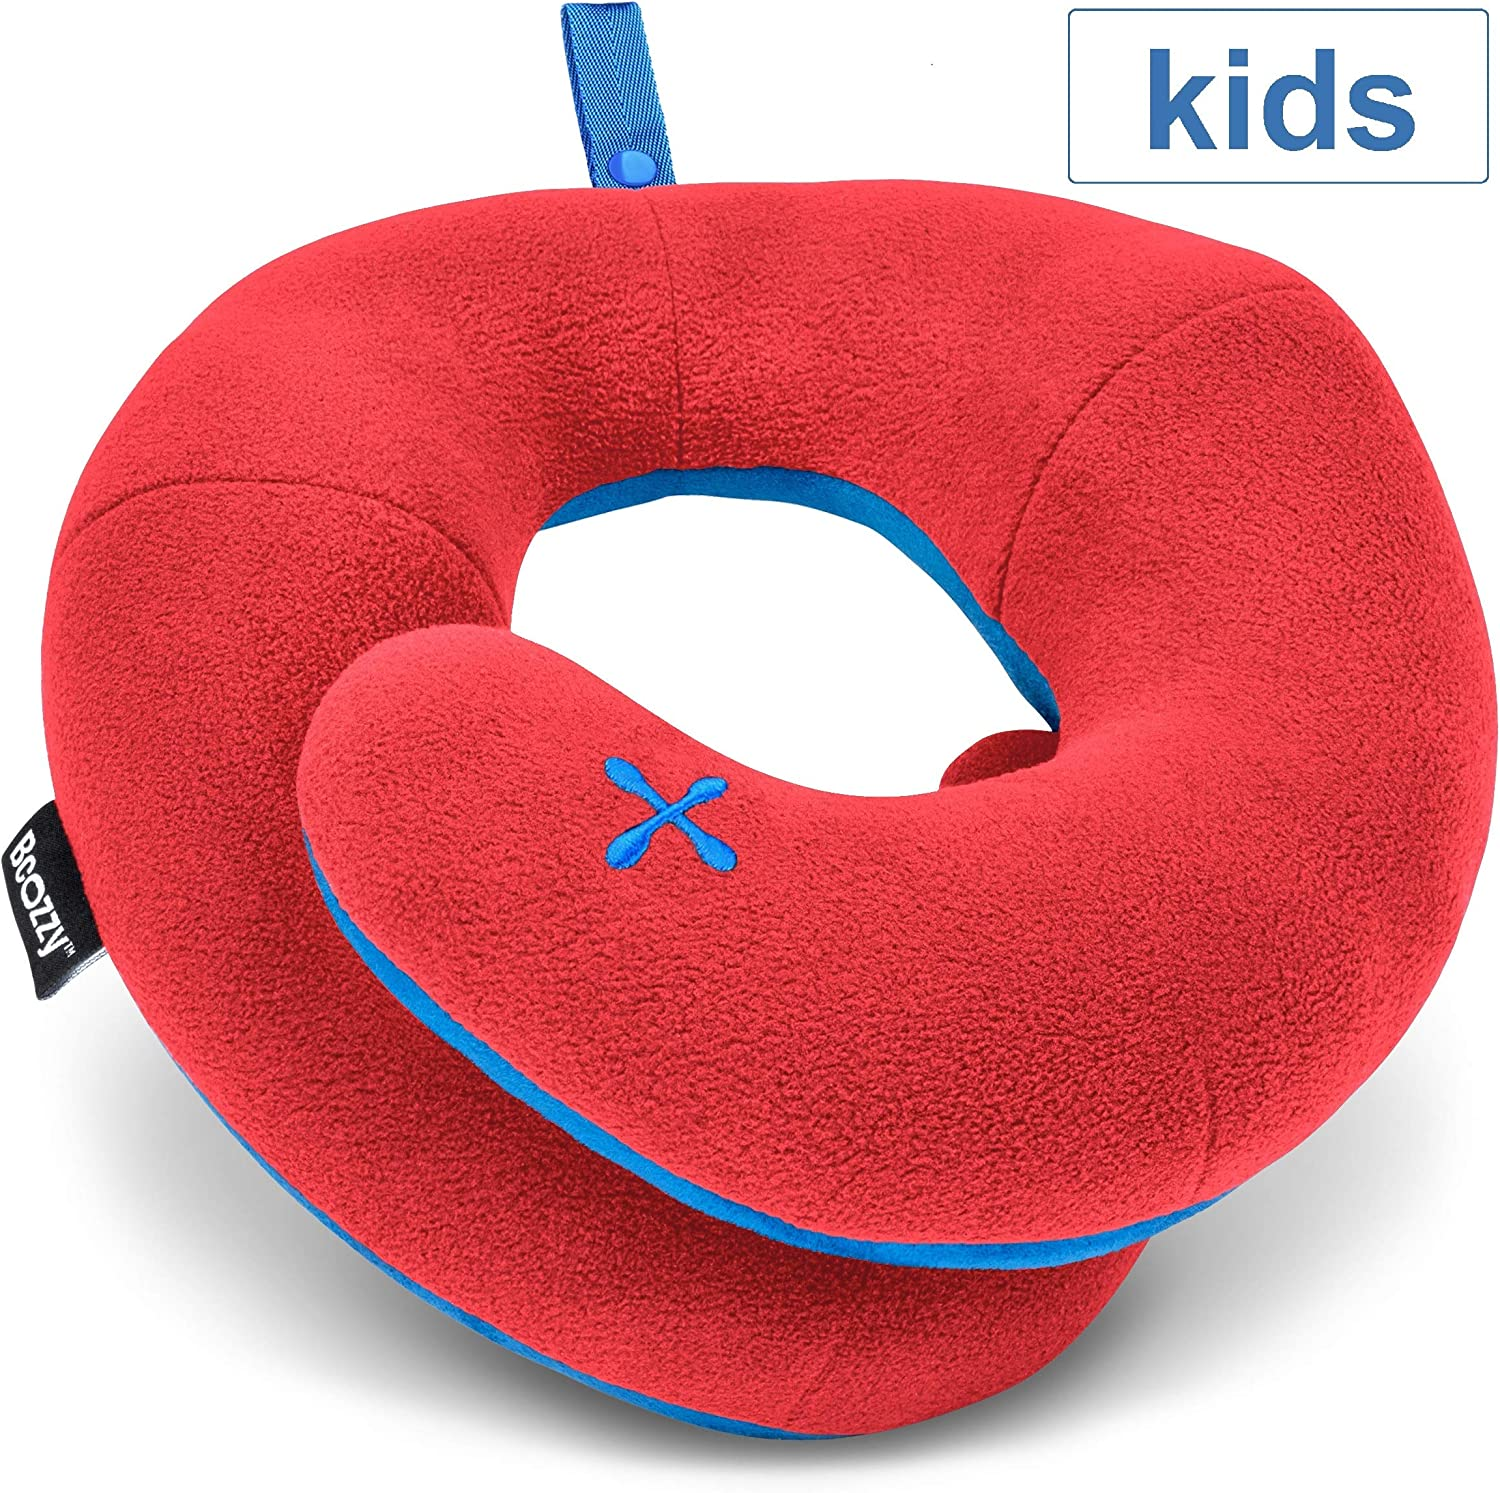 BCOZZY KIDS Chin Supporting Travel Pillow Keeps The Child's Head from Bobbing up and Down in Car Rides Comfortably Supports The Head, Neck and Chin